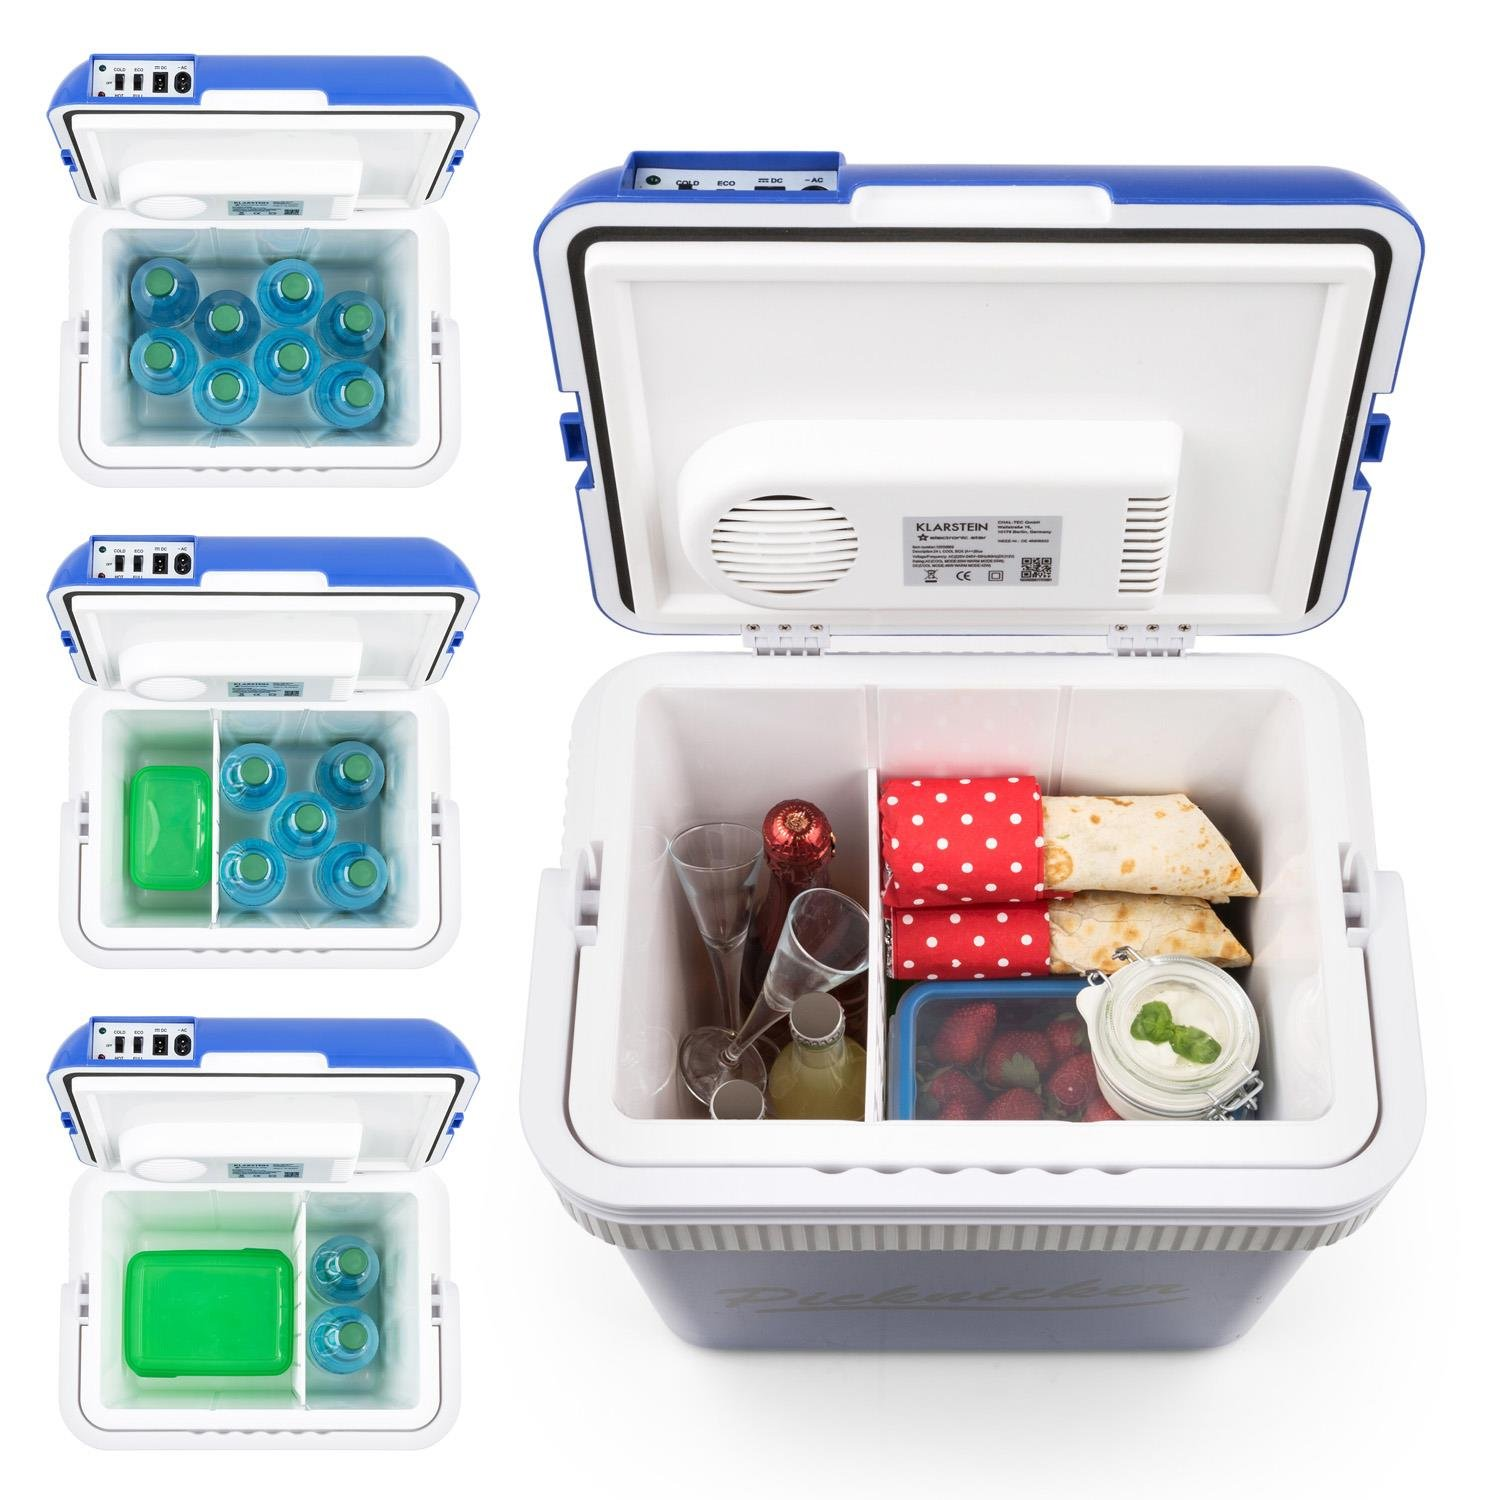 24L, 2 Operating Modes for Cooling and Heating, Environmental Friendly ECO Mode with Energy Efficiency A++, 1 x AC + 1 x DC Power Cable Klarstein Big Picnicker Thermo Cool Box Blue